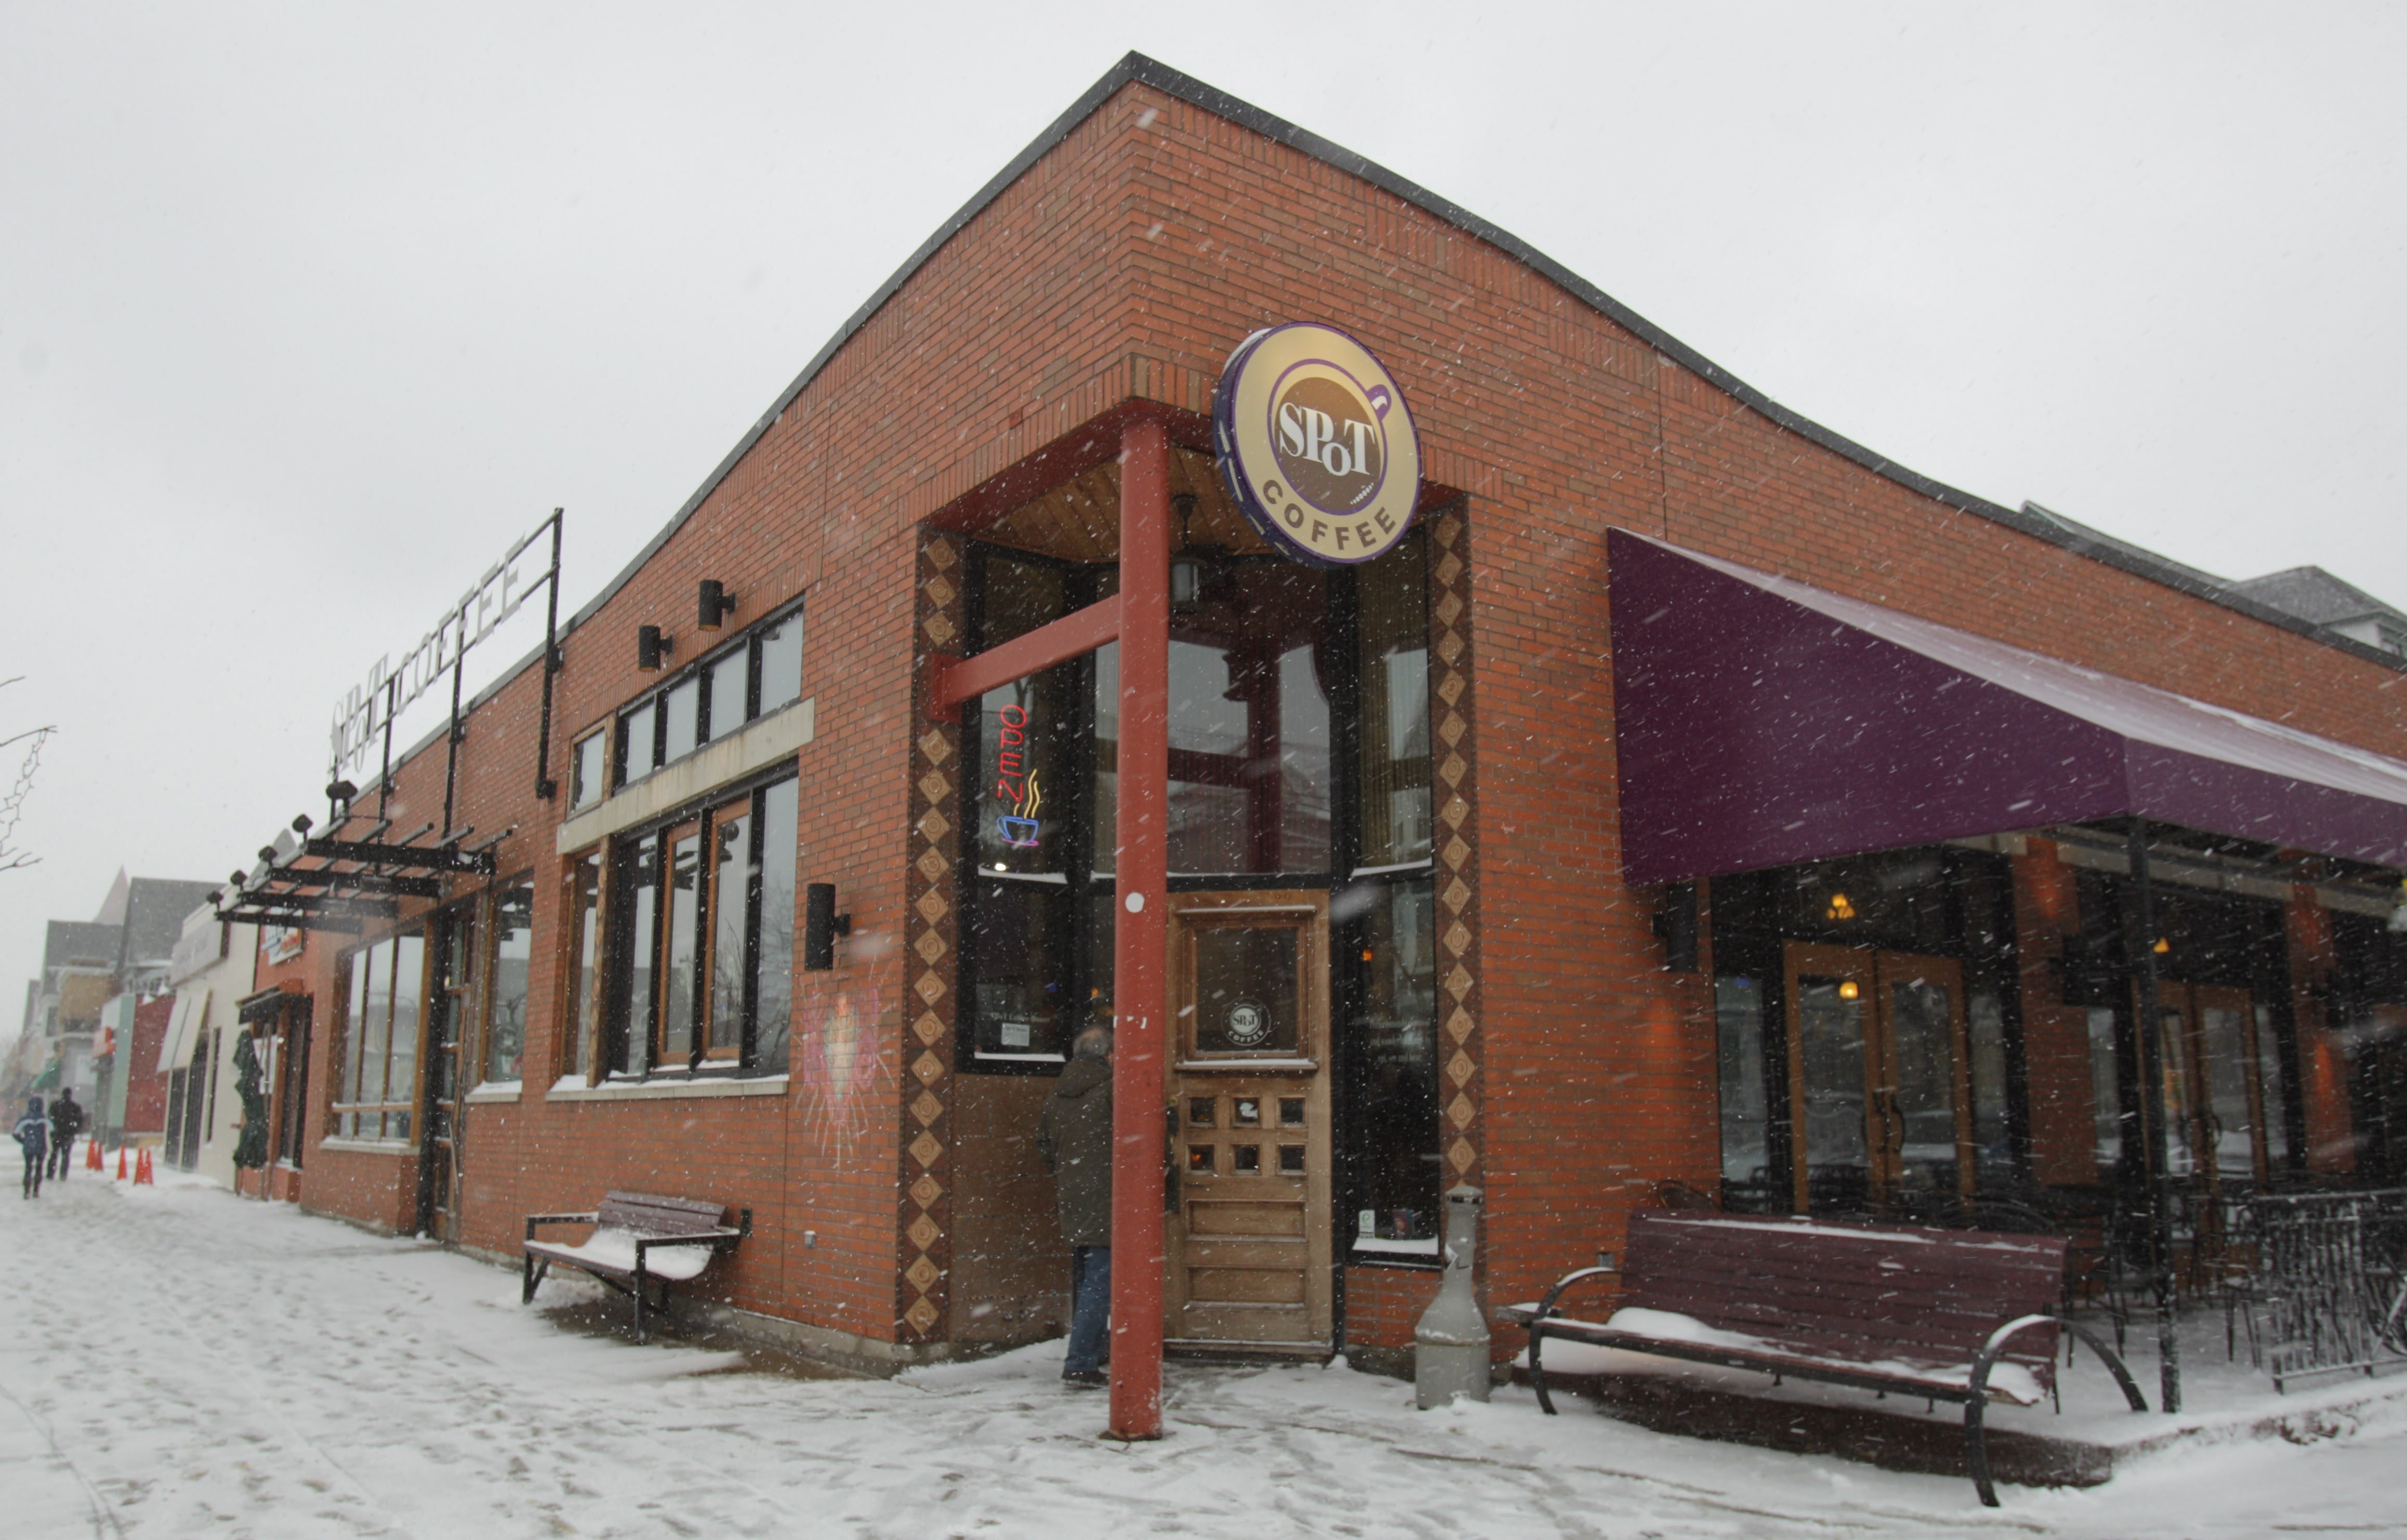 This Spot Coffee on Elmwood Avenue in Buffalo is one of several the Canadian-based coffee chain plans to offer as franchises.